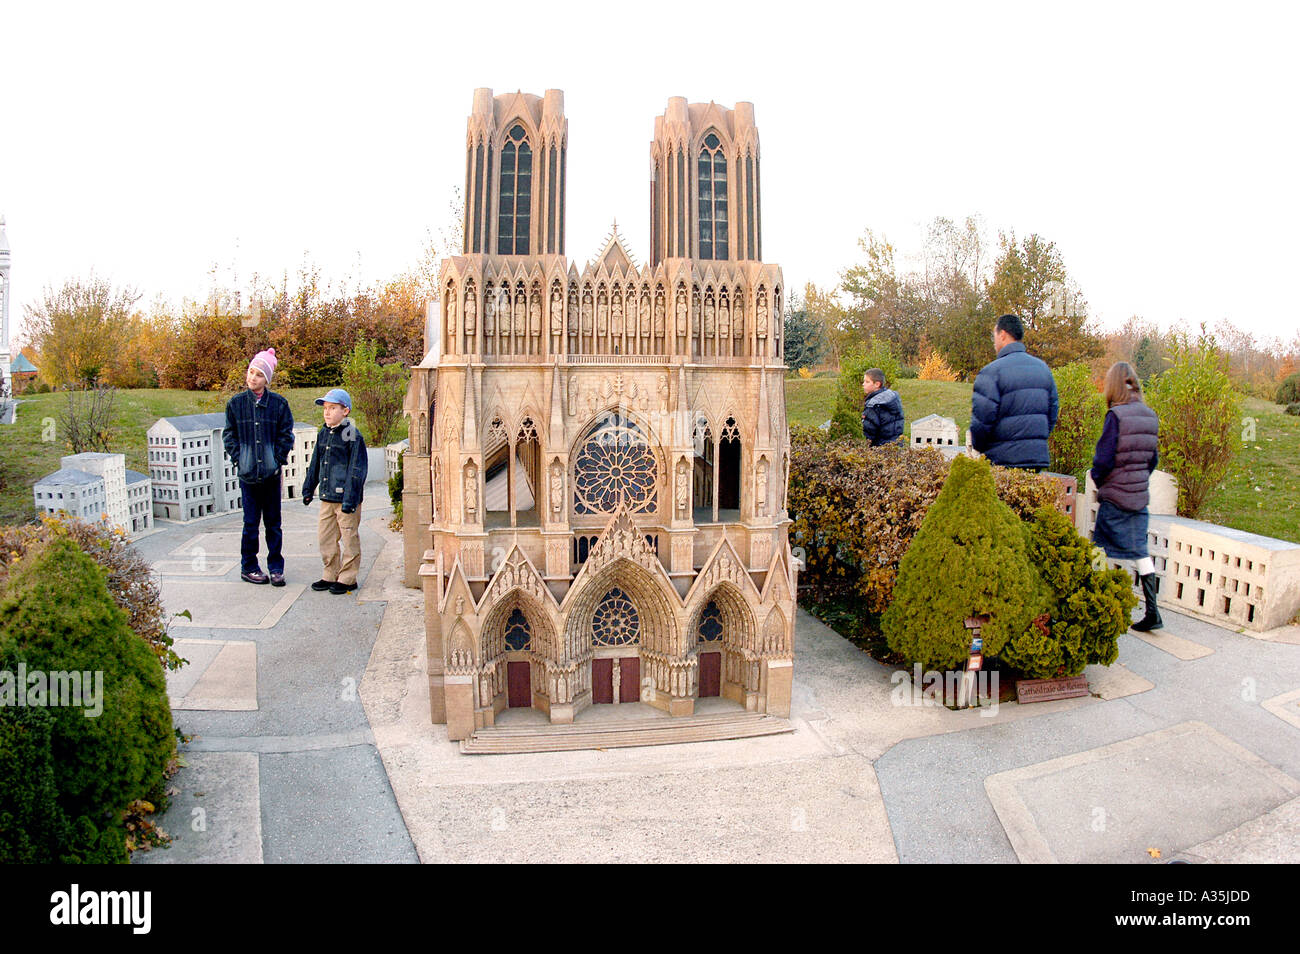 Paris, France, Children Visiting France Miniature Theme Park Architectural Models of French Monuments in Elancourt Reims Cathedral - Stock Image